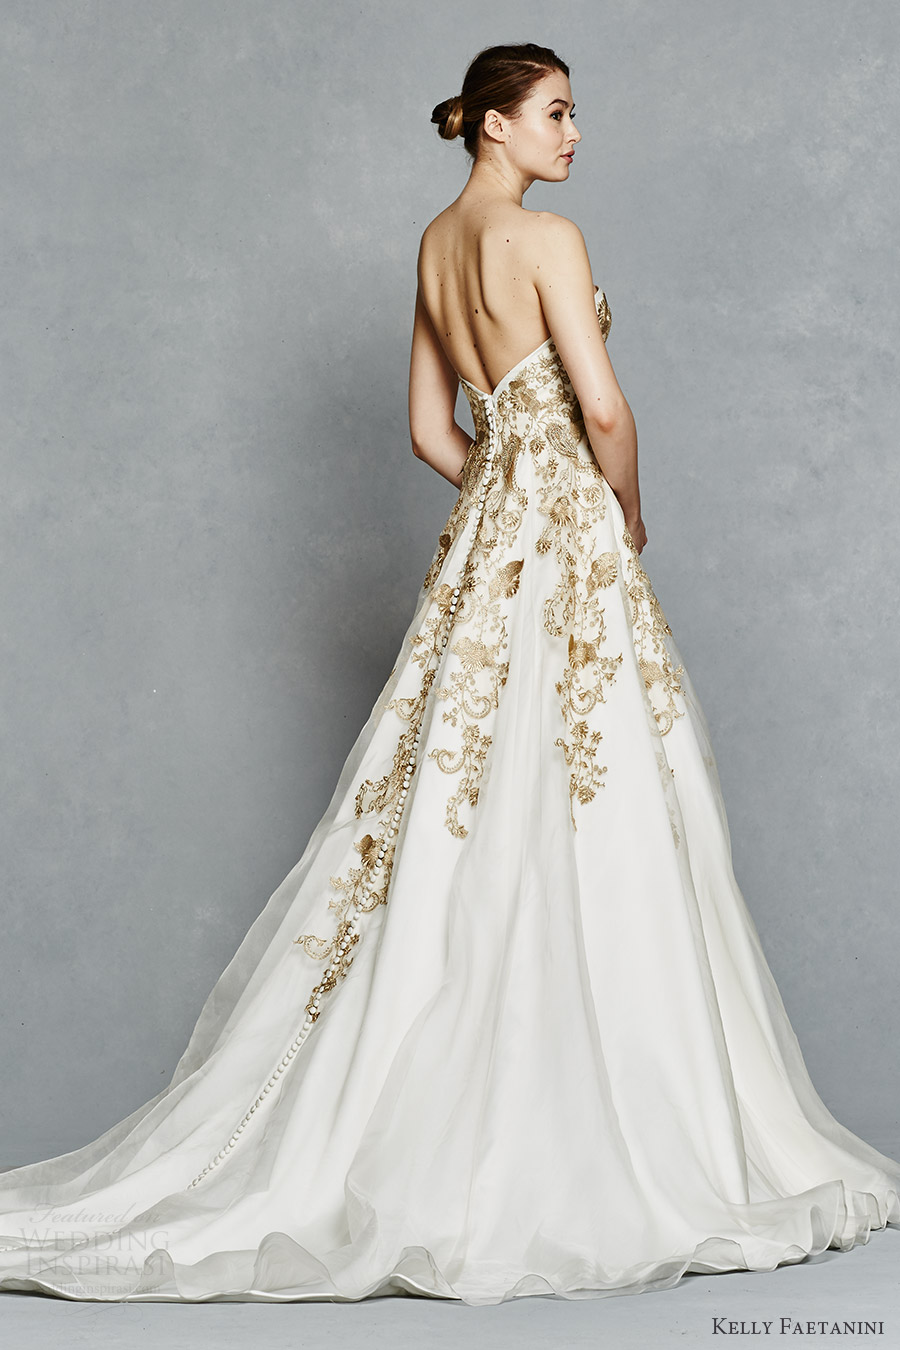 Smothery Kelly Faetanini Bridal Spring 2017 Strapless Sweeart Ball Gown Weddingdress Sv G Kelly Faetanini Spring 2017 Wedding Dresses Wedding Inspirasi G Wedding Dresses Sleeves Uk G Wedding Dresses 2 wedding dress Gold Wedding Dresses